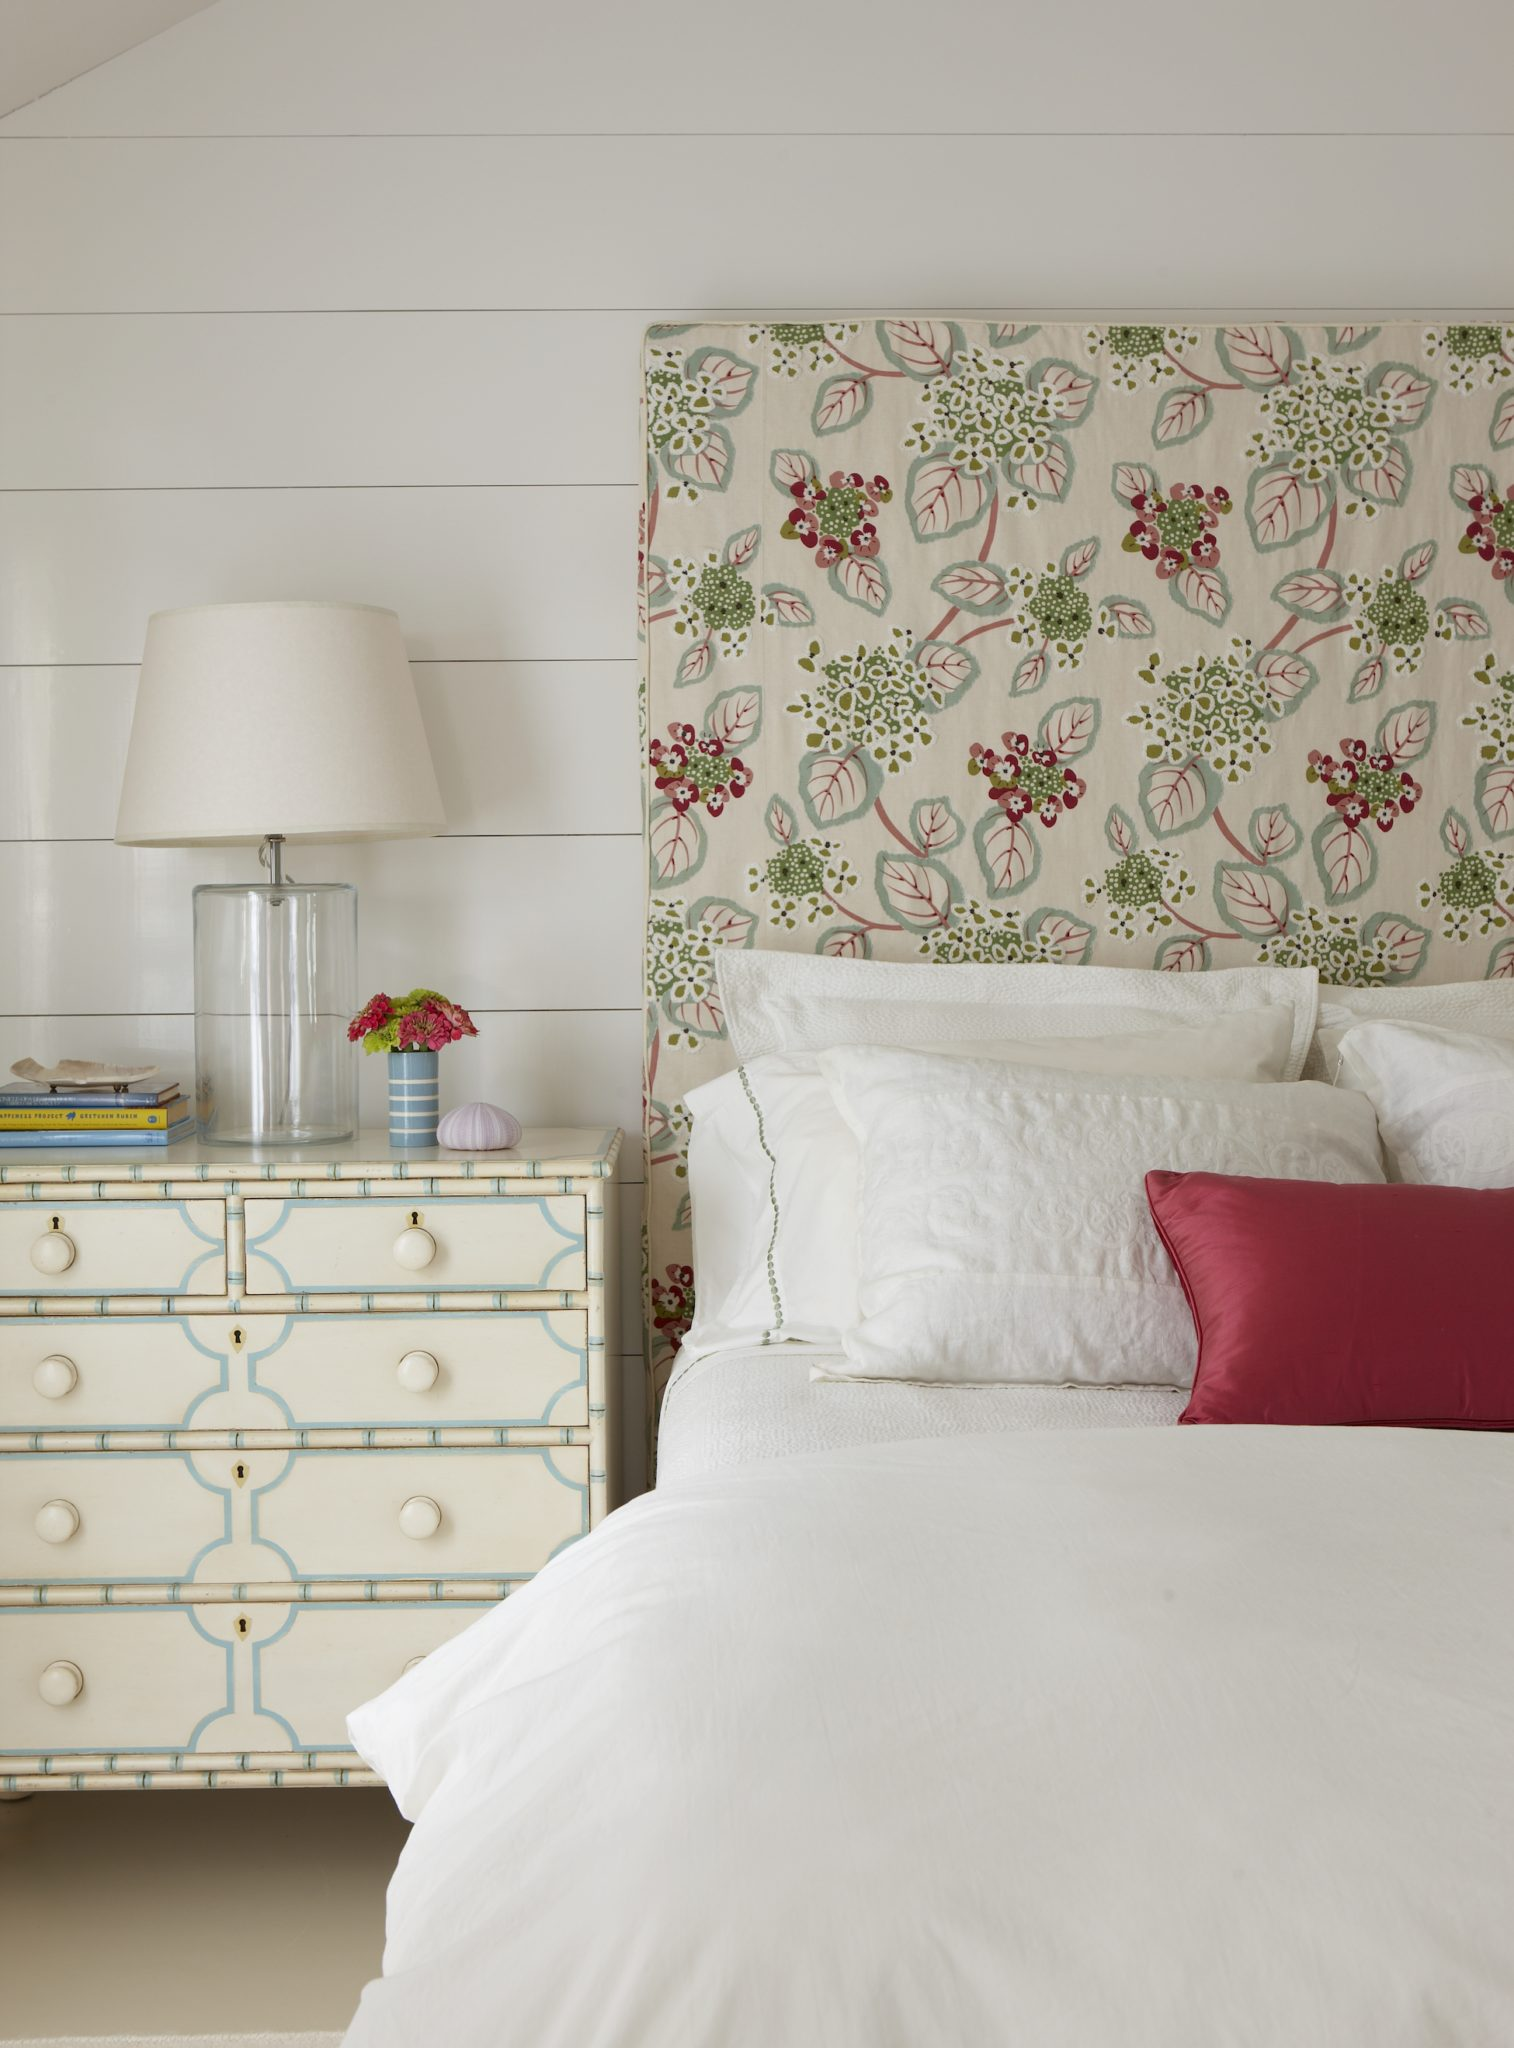 Bedroom with Custom Painted Nightstand at Chappaquiddick, Martha's Vineyard by Banks Design Associates Ltd.